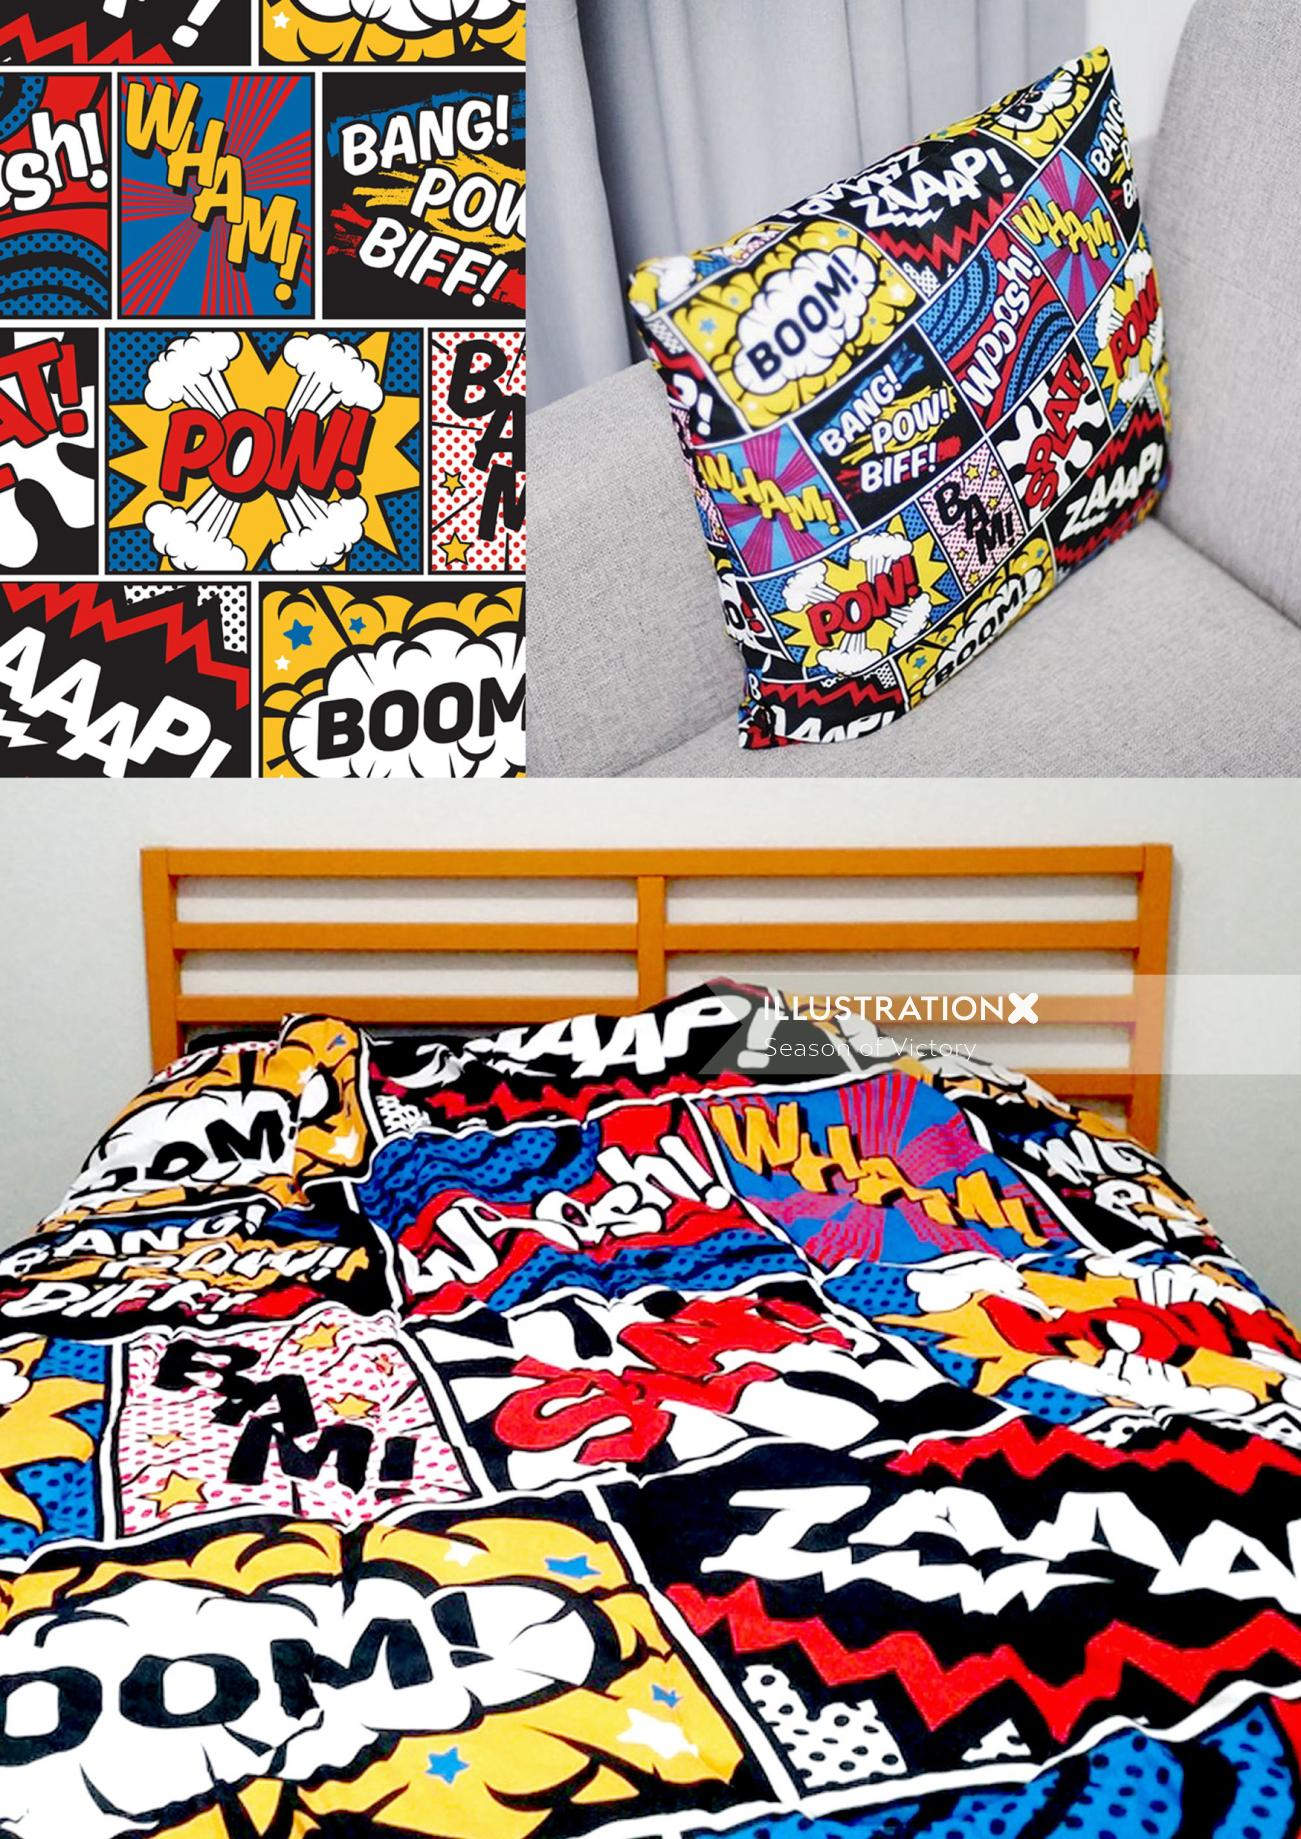 Pop art comic book imagery for product